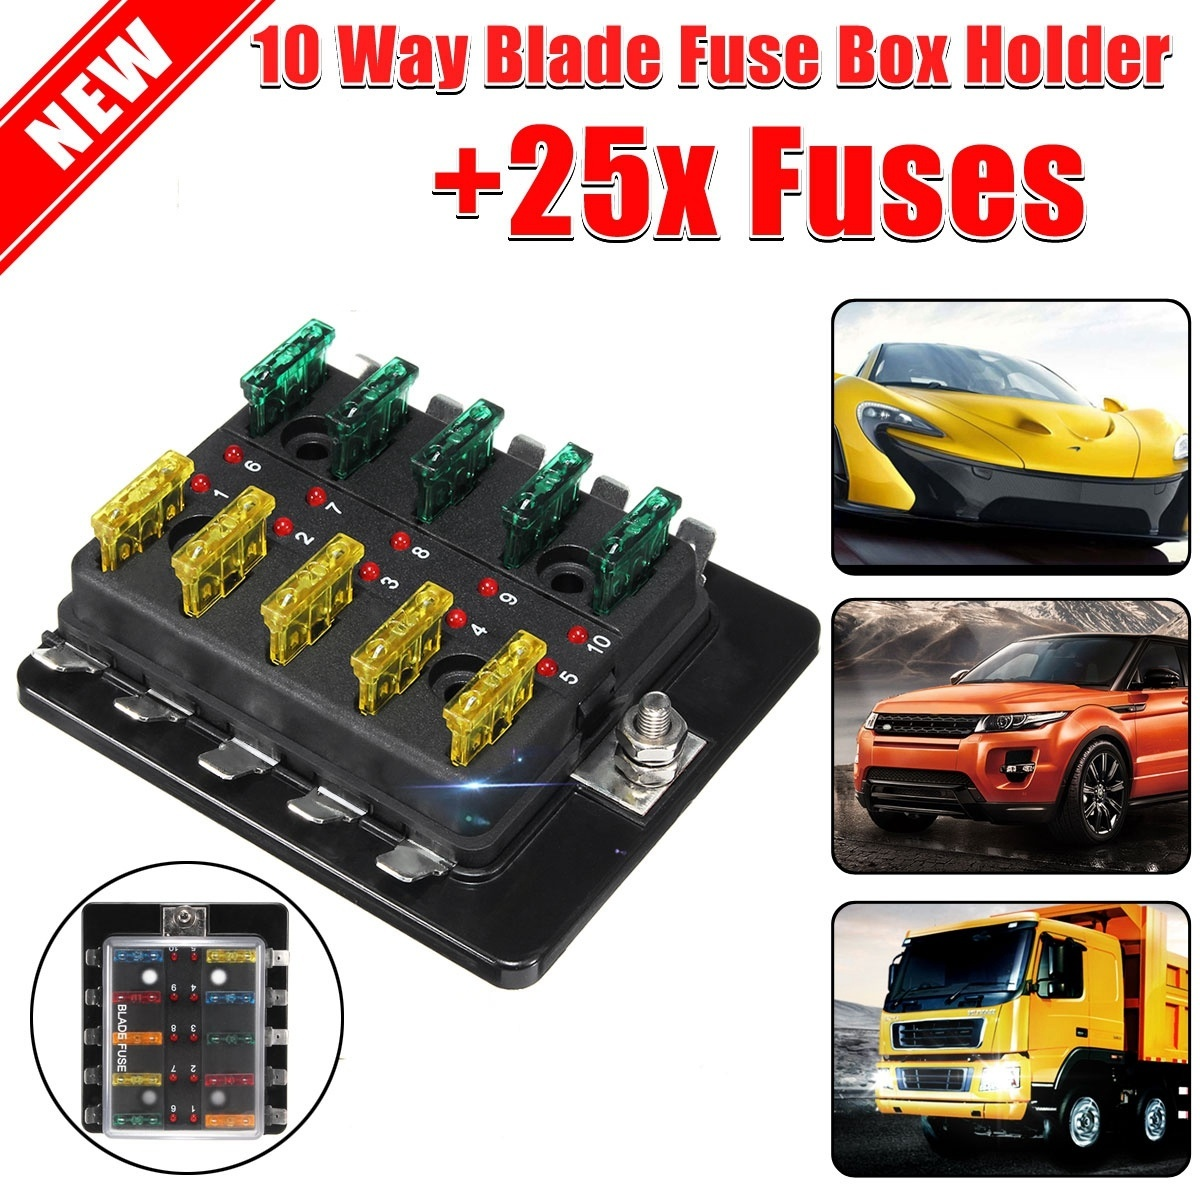 Qoo10 12v 32v Car 10 Way Blade Fuse Connector Box Holder Led Portable Fit To Viewer